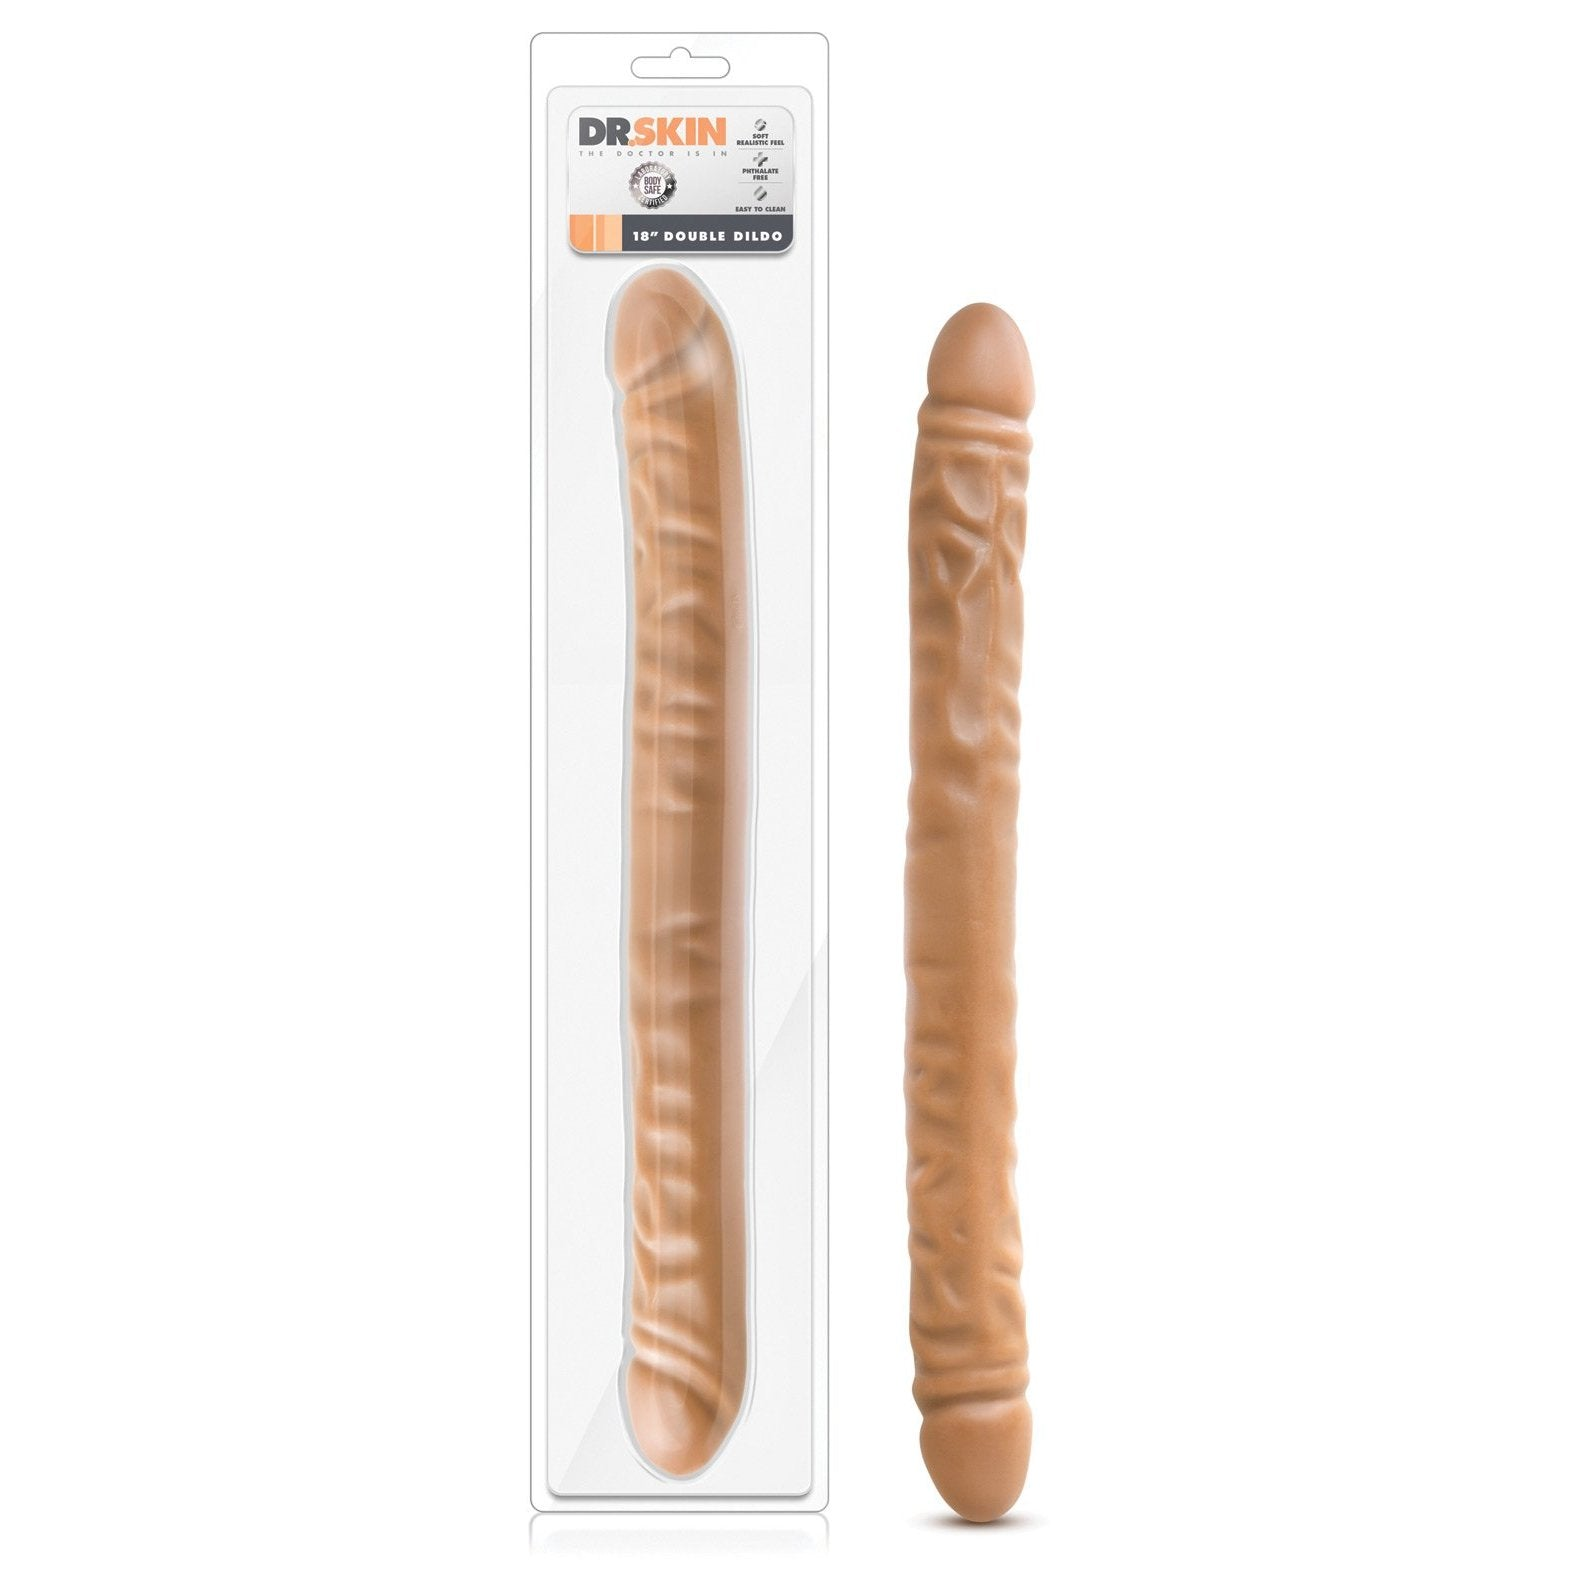 "Blush Dr. Skin 18"" Double Dildo - Gay Men's Sex Toys - Adam's Toy Box"